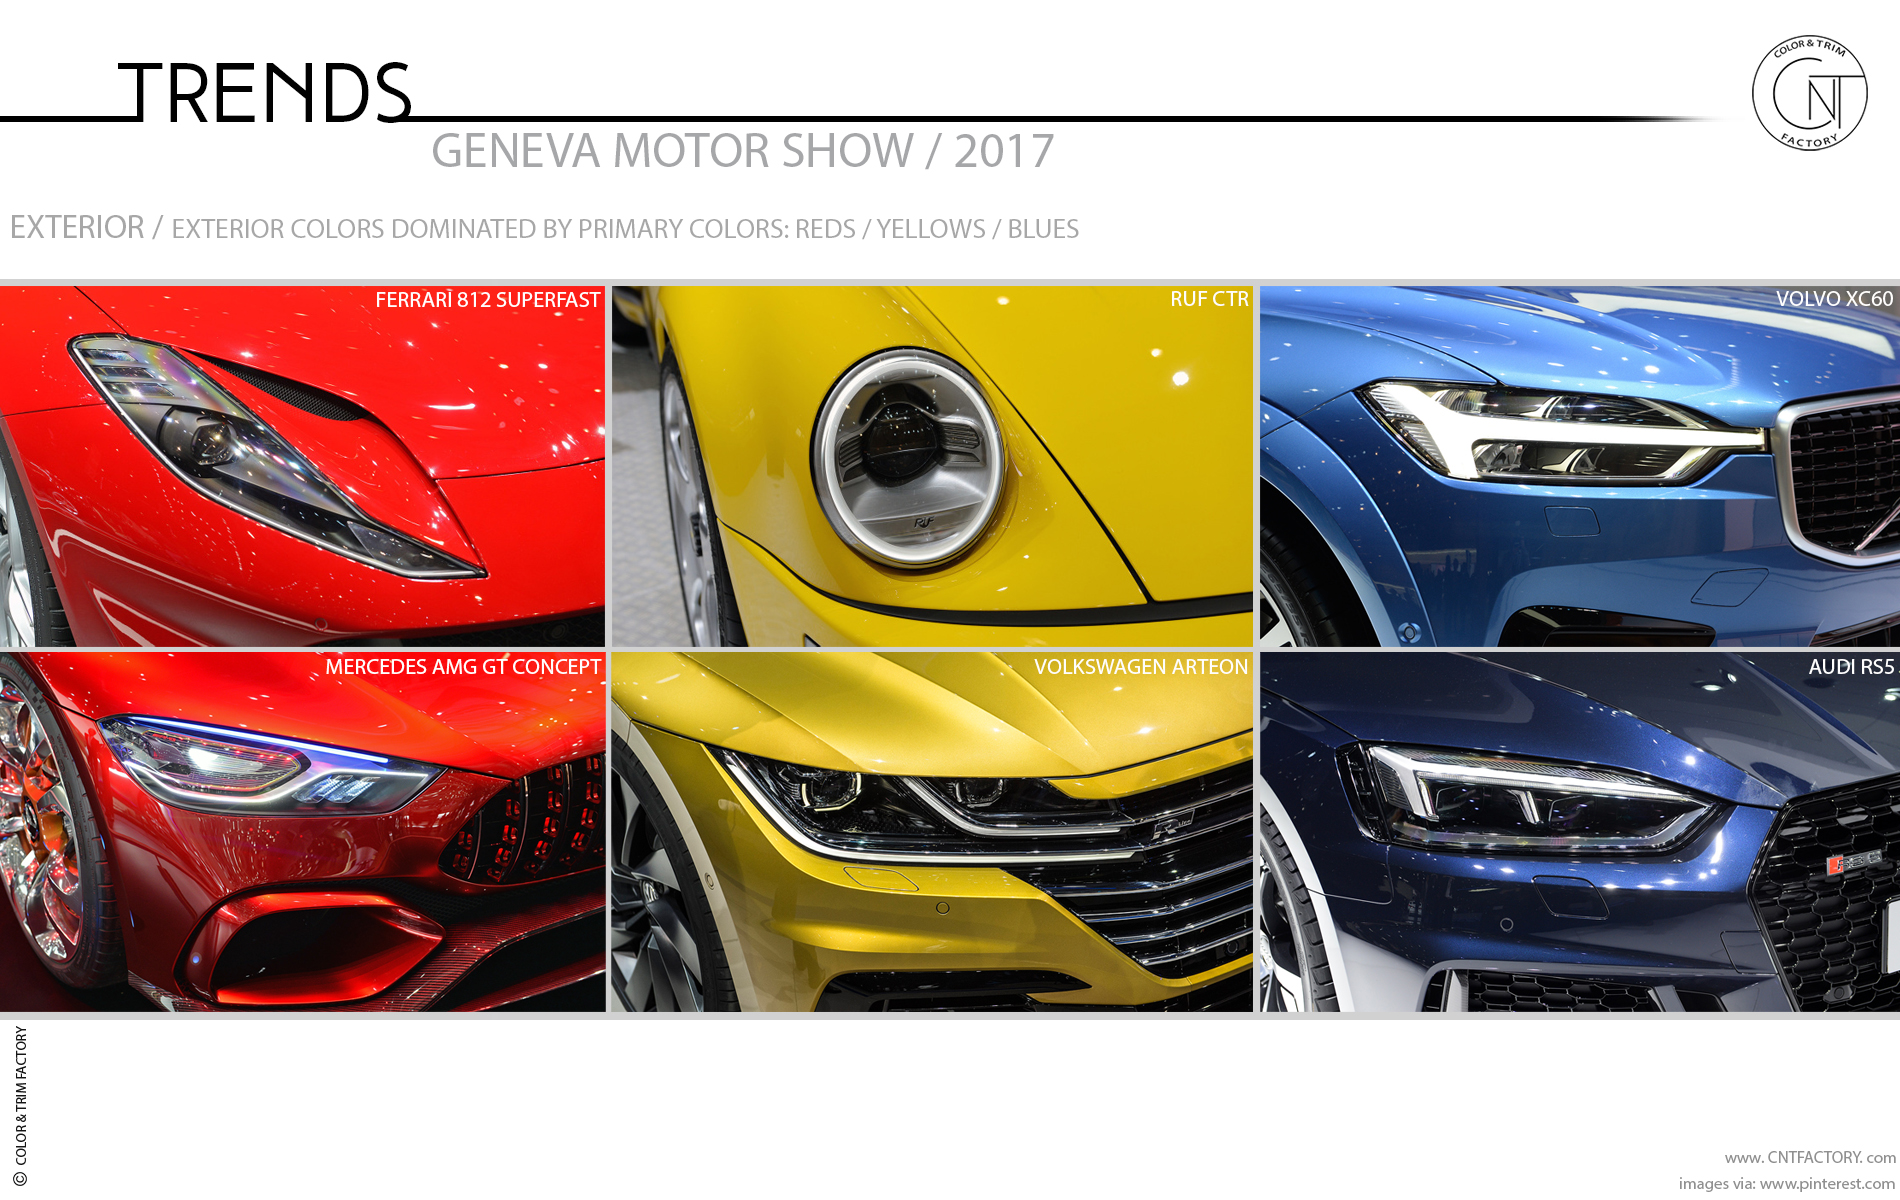 2017 Geneva Motor Show Color And Trim Trends